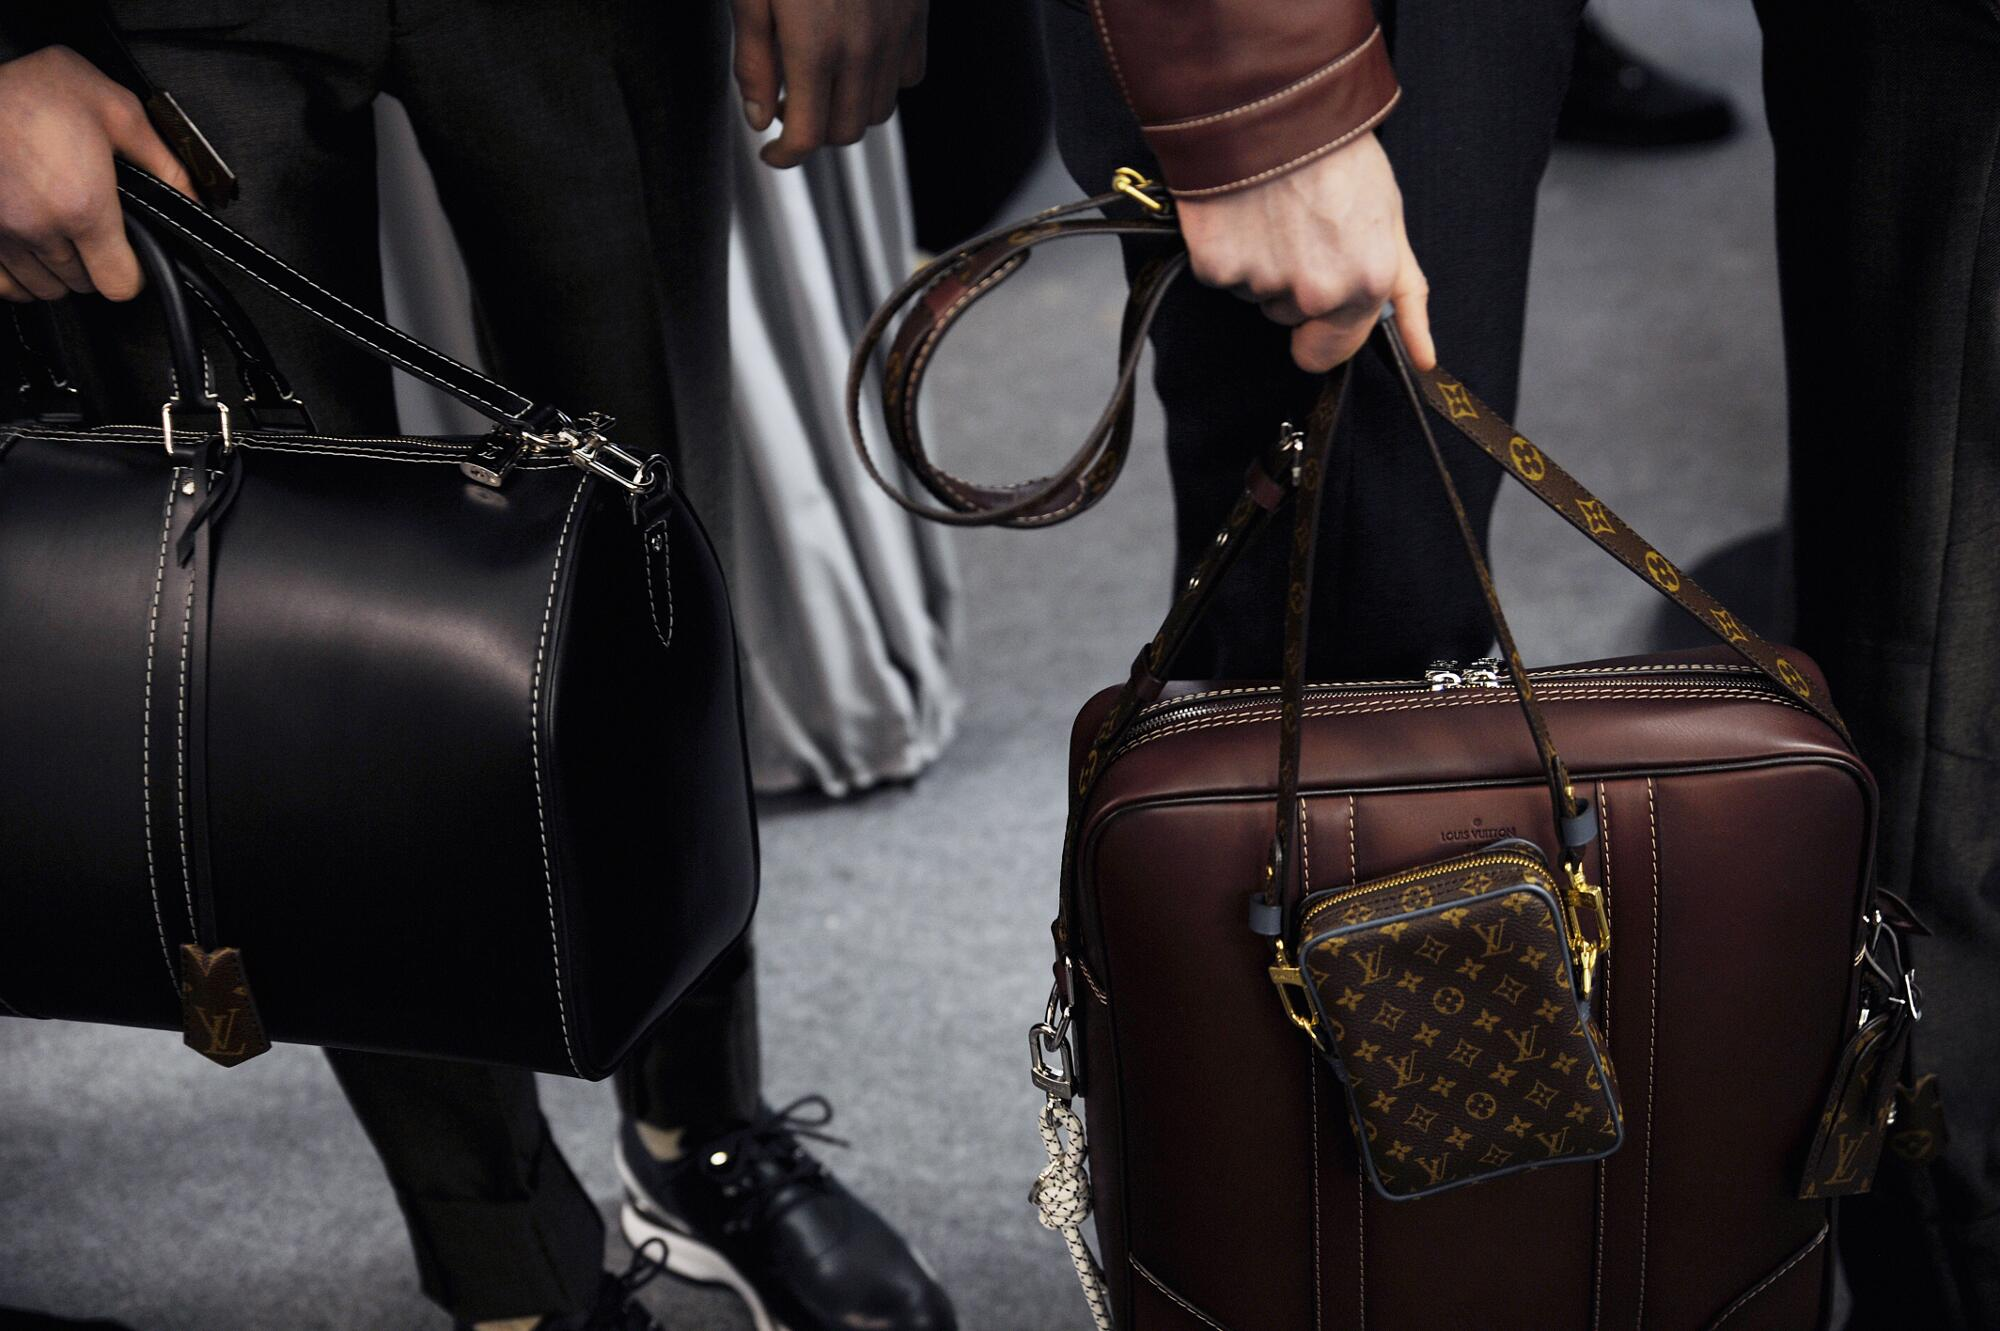 Louis Vuitton Backstage 2015 Bags